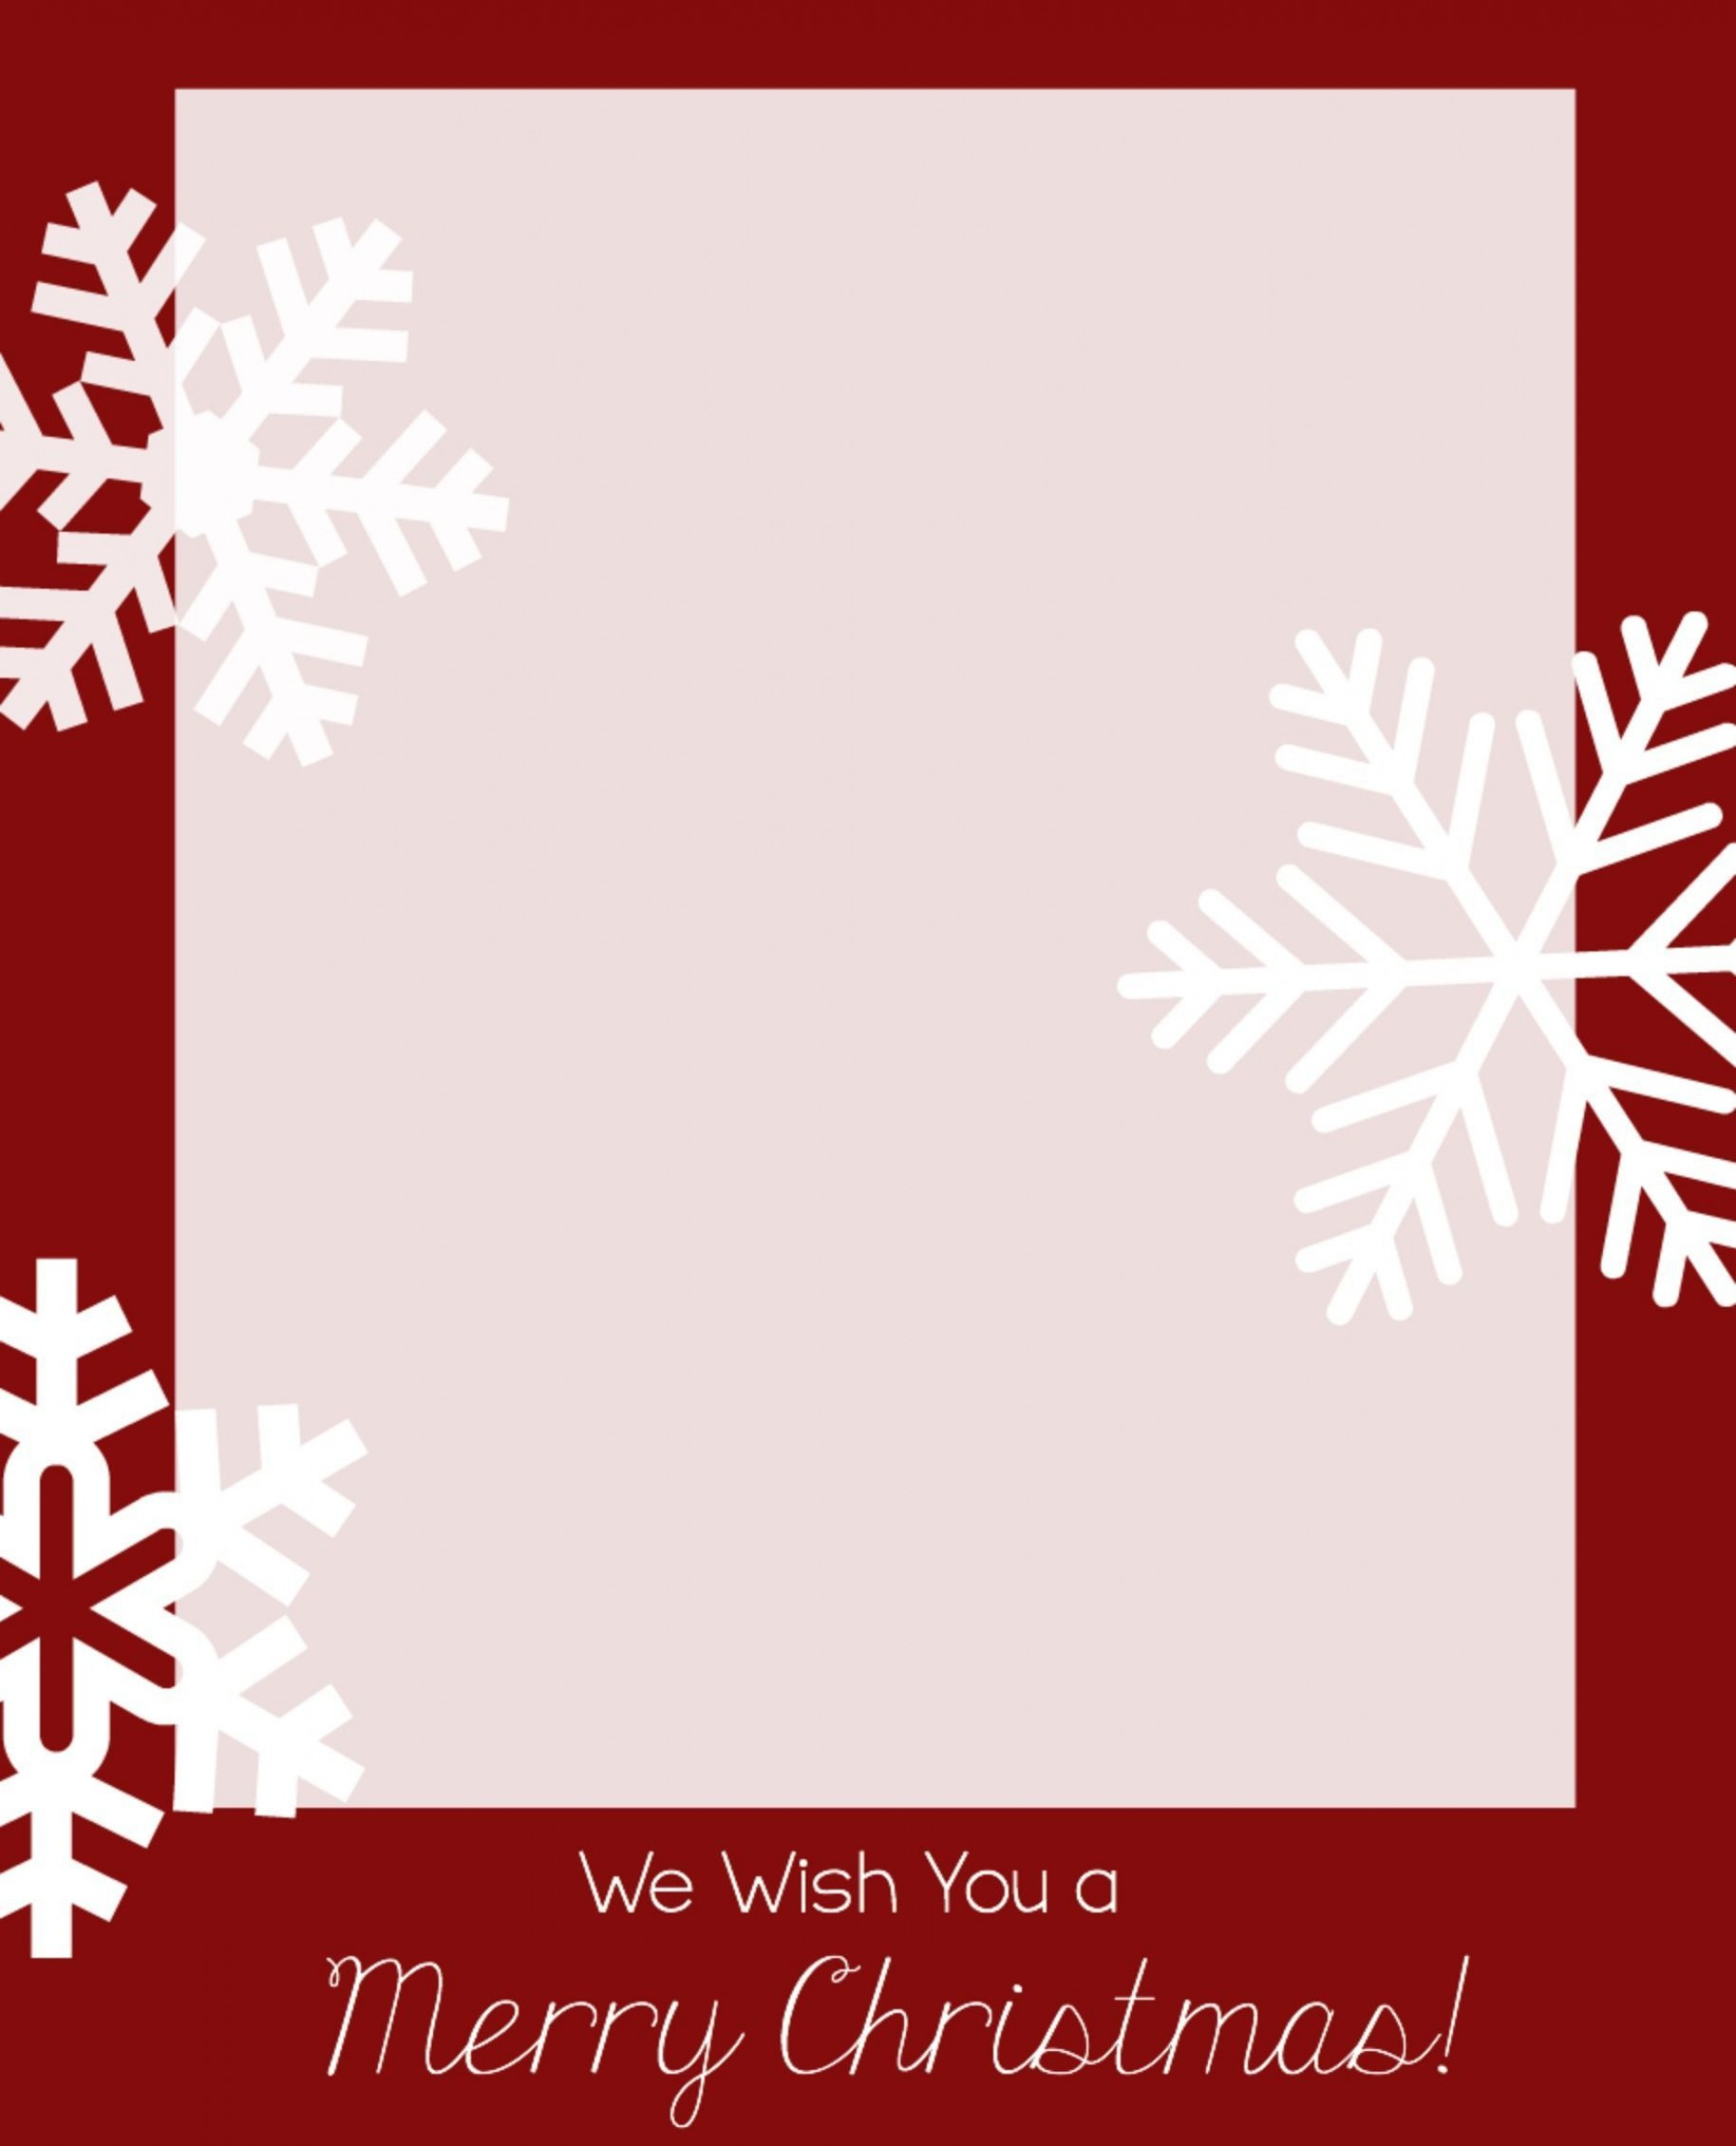 003 Incredible Free Holiday Card Template Concept  Templates Printable Photo For Word1920